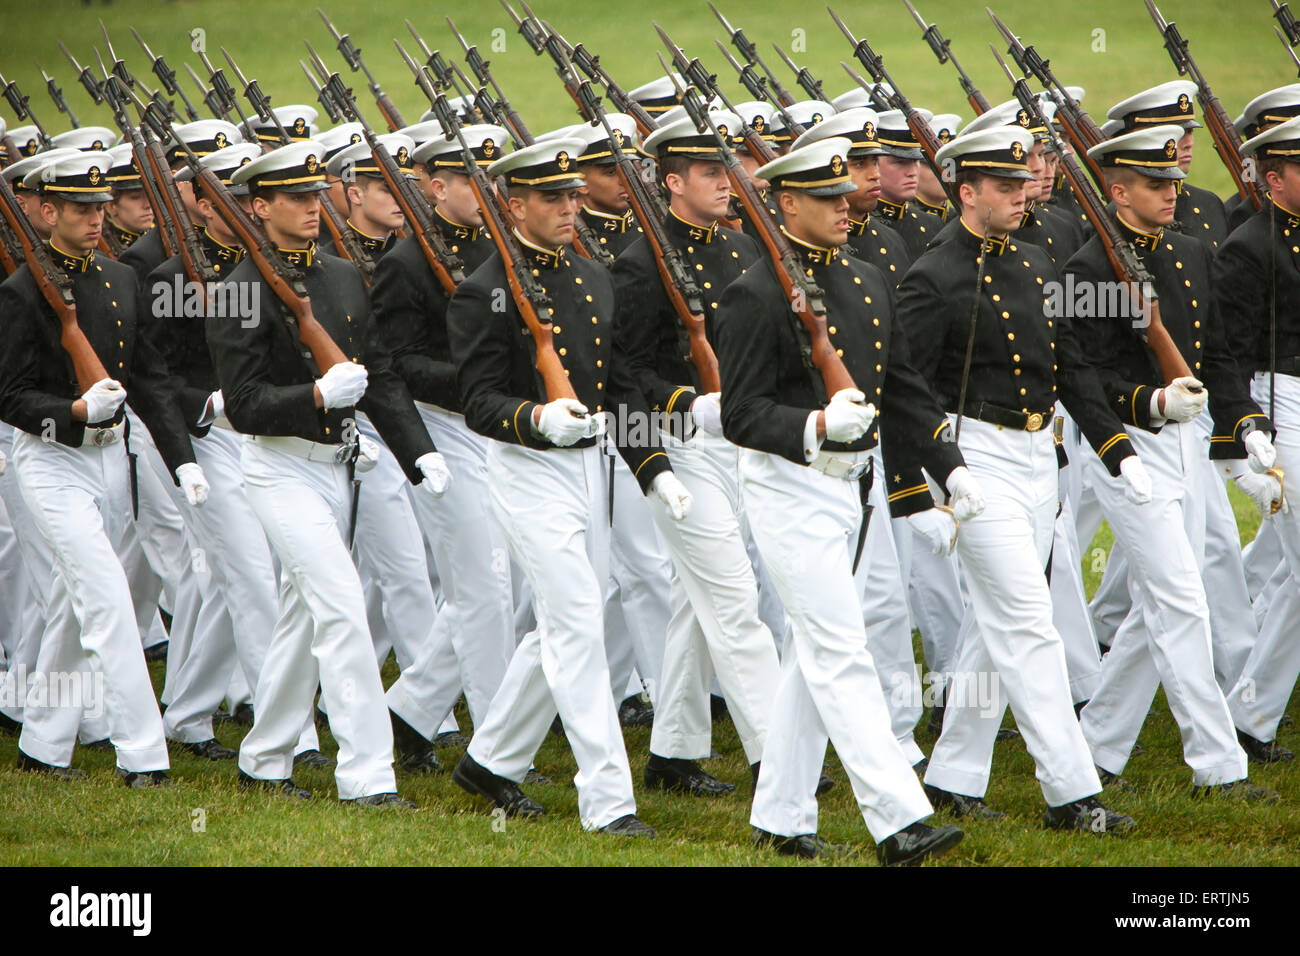 US Naval Academy cadets in formal dress march in the annual Color Parade at Worden Field on May 21, 2015 in Annapolis, - Stock Image